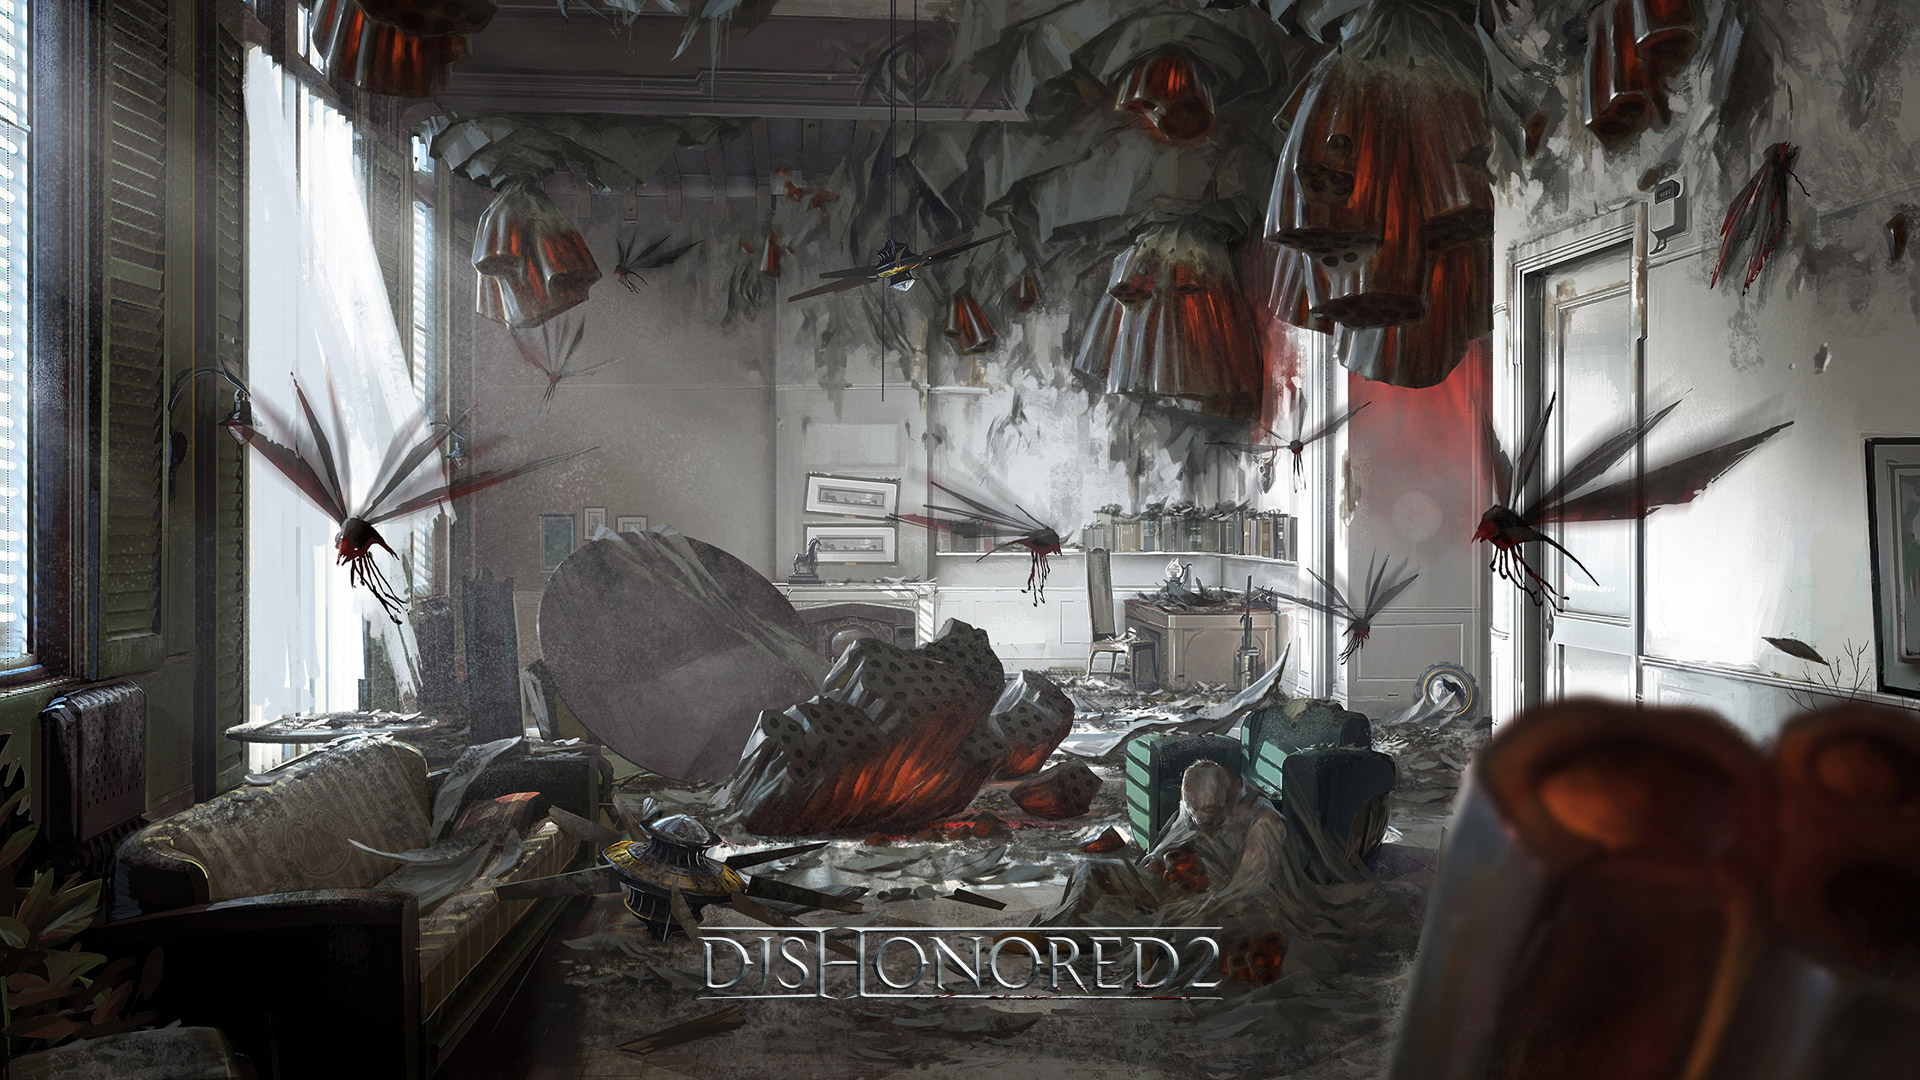 Dishonored 2 Wallpaper in 1920x1080